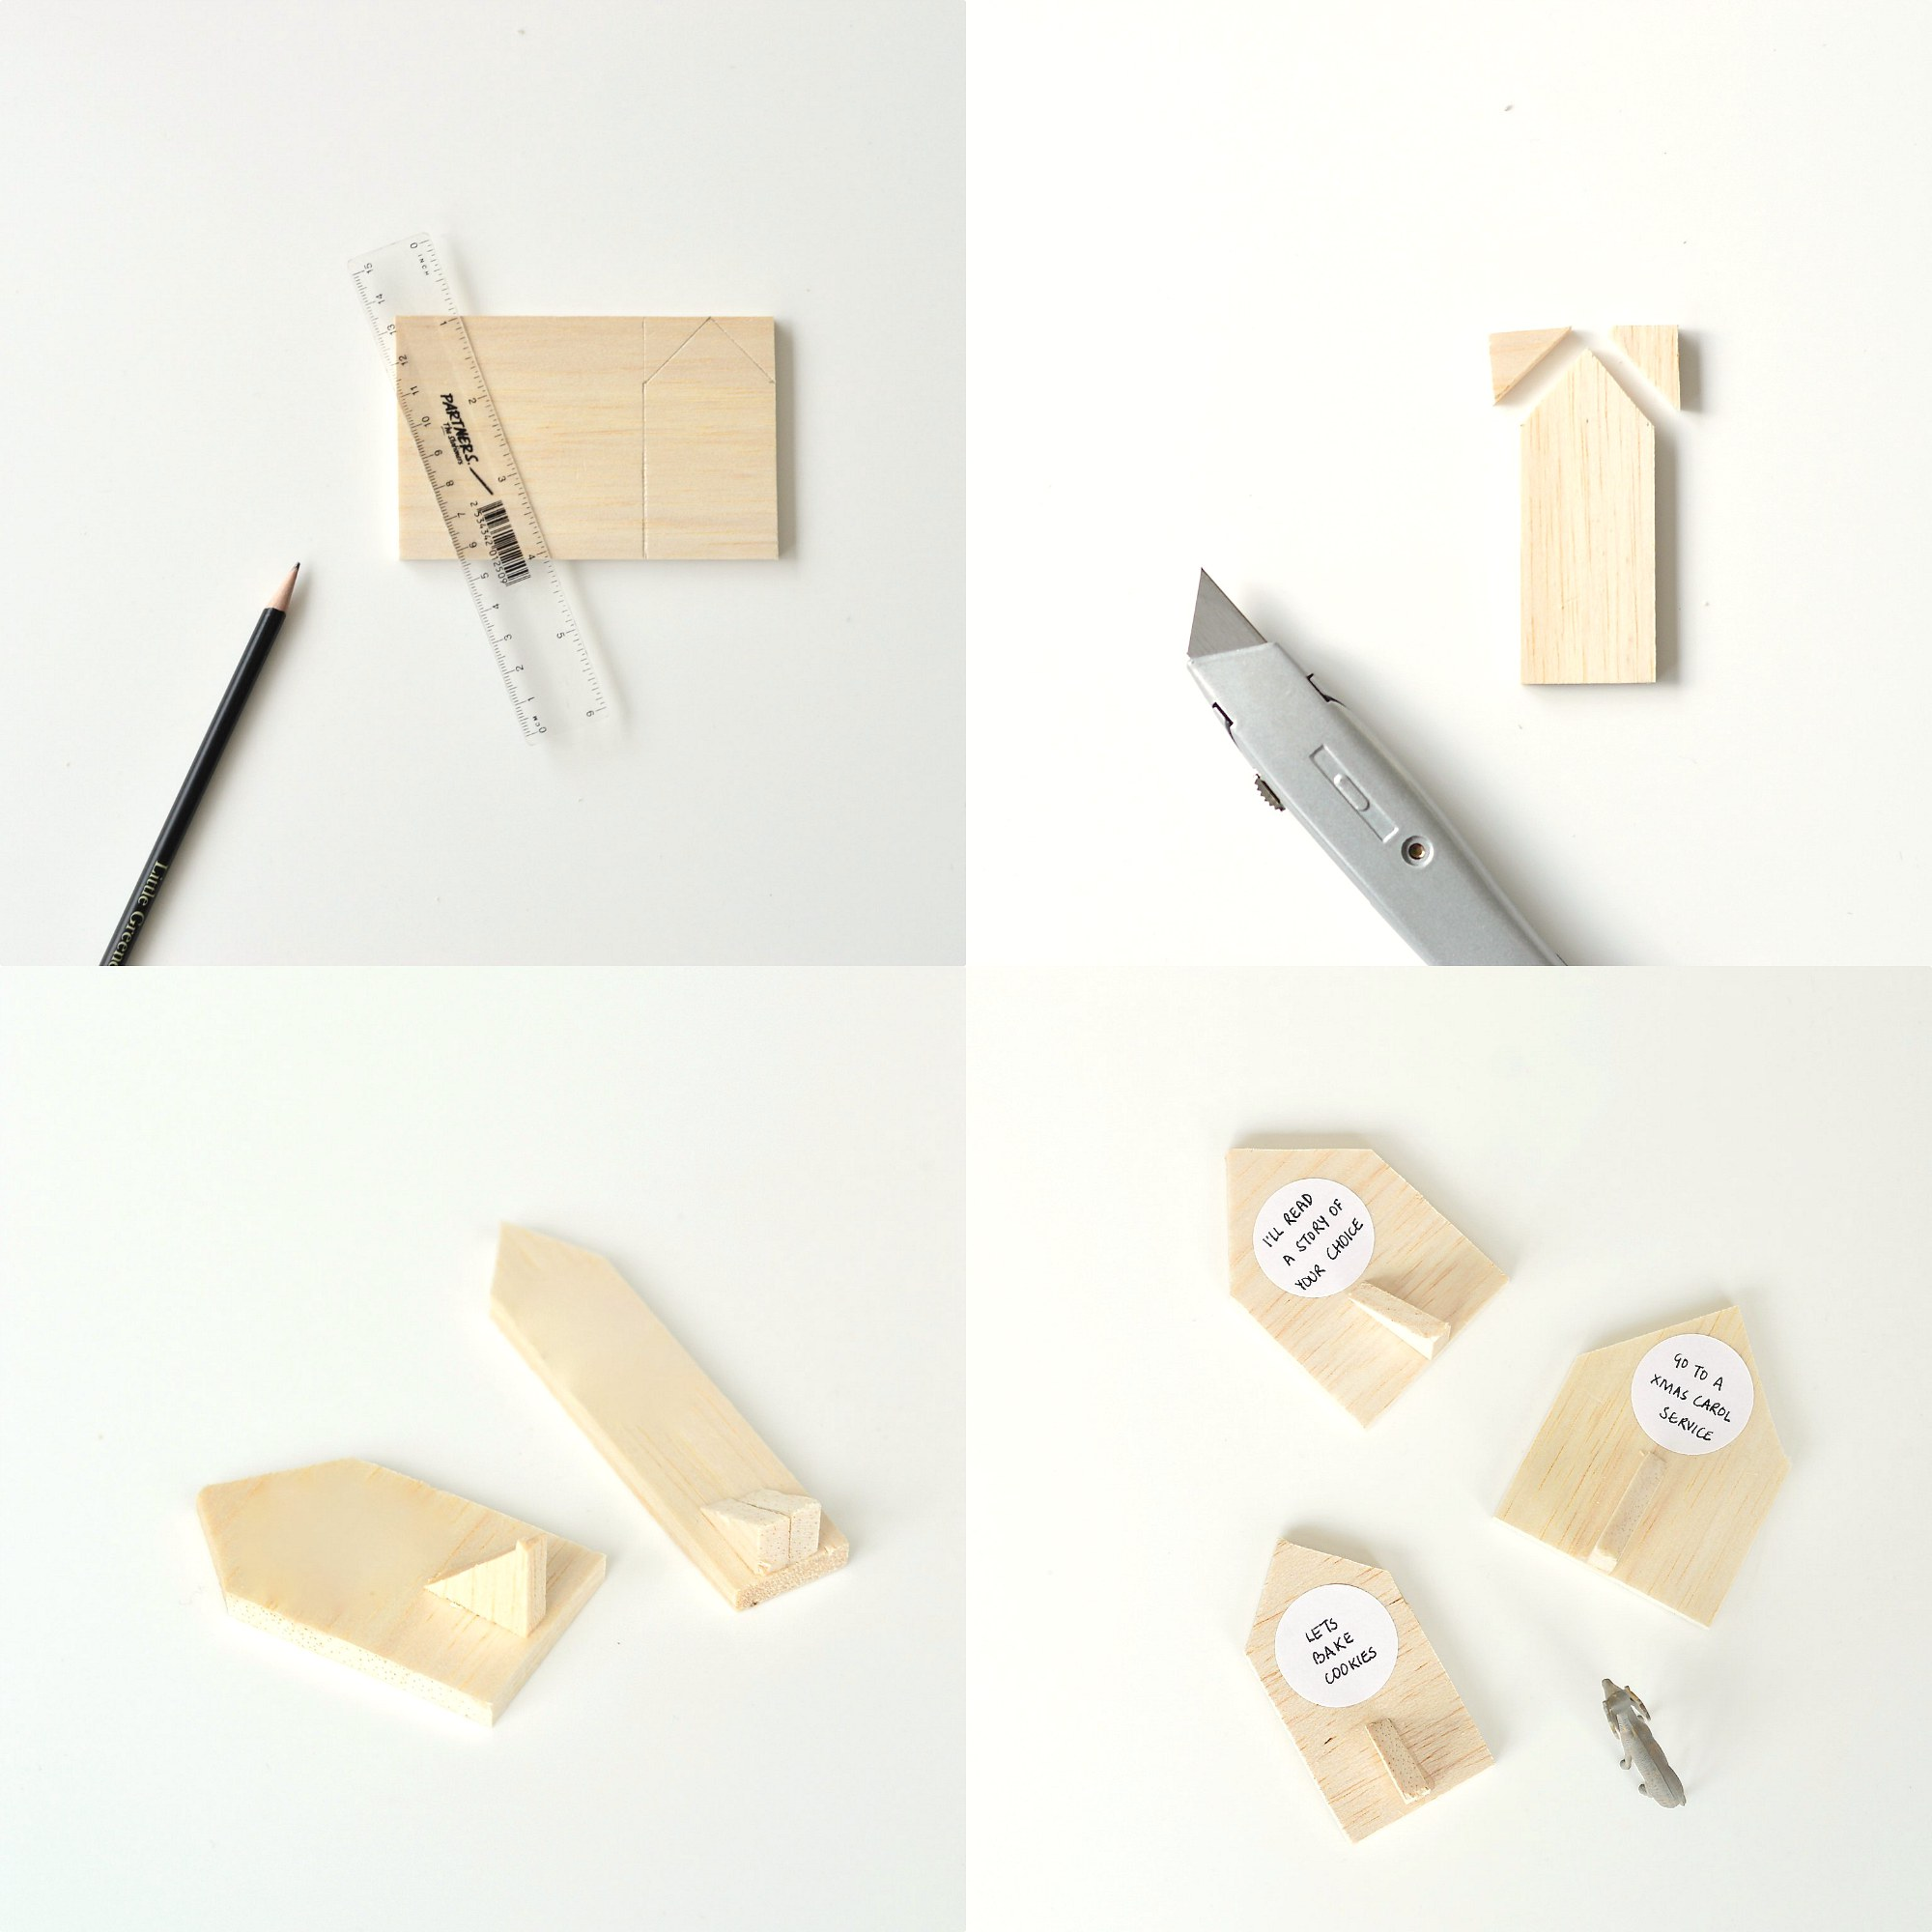 Make this mini house wooden advent calendar diy home How to build a wooden advent calendar